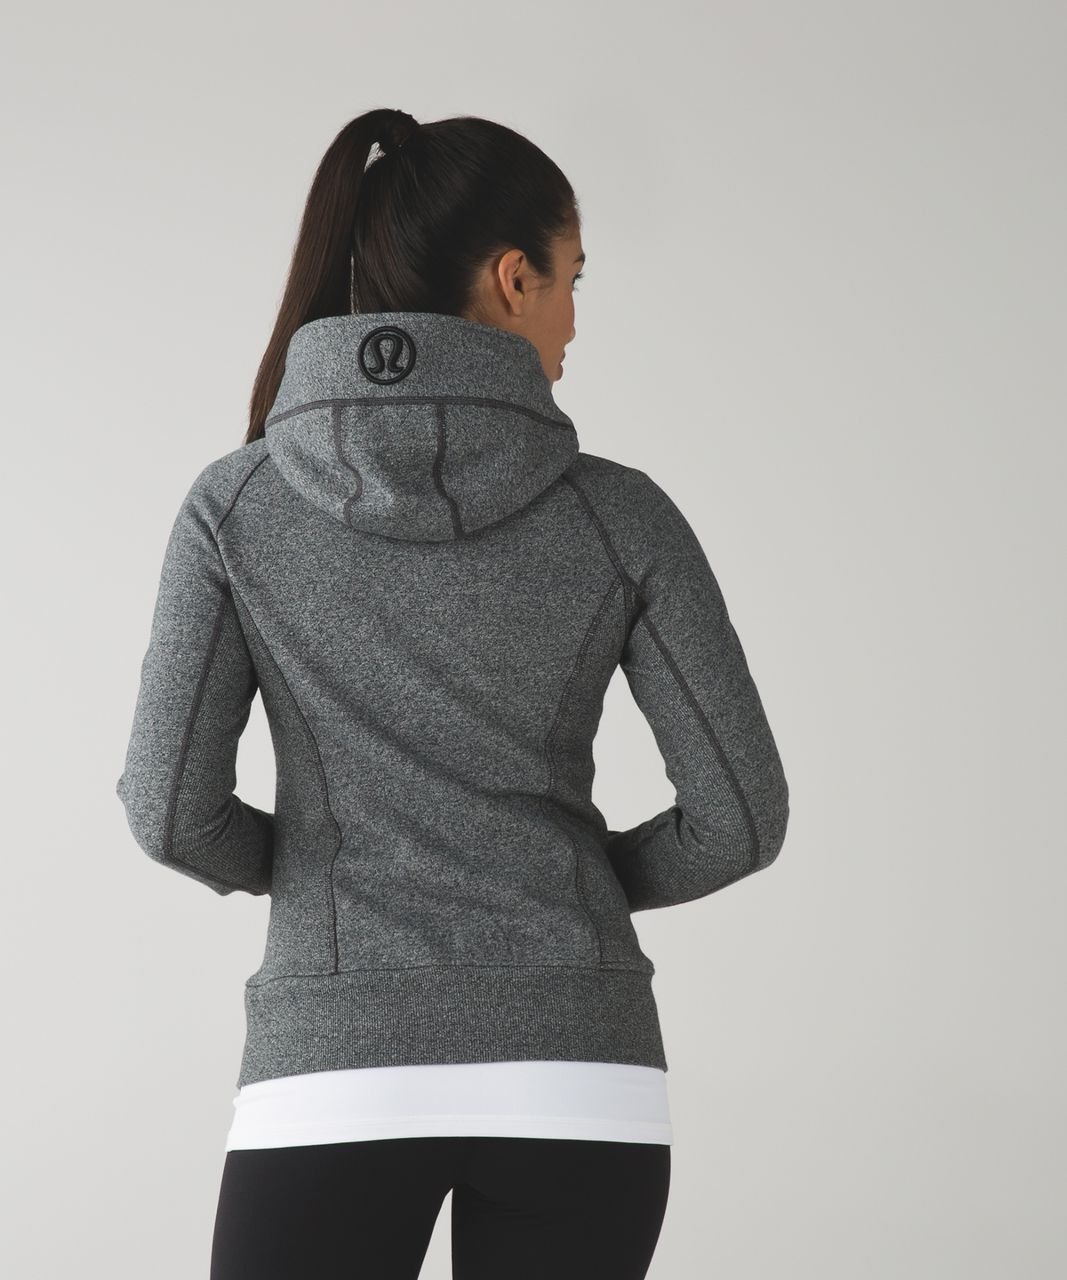 Lululemon Scuba Hoodie II - Heathered Speckled Black / Black